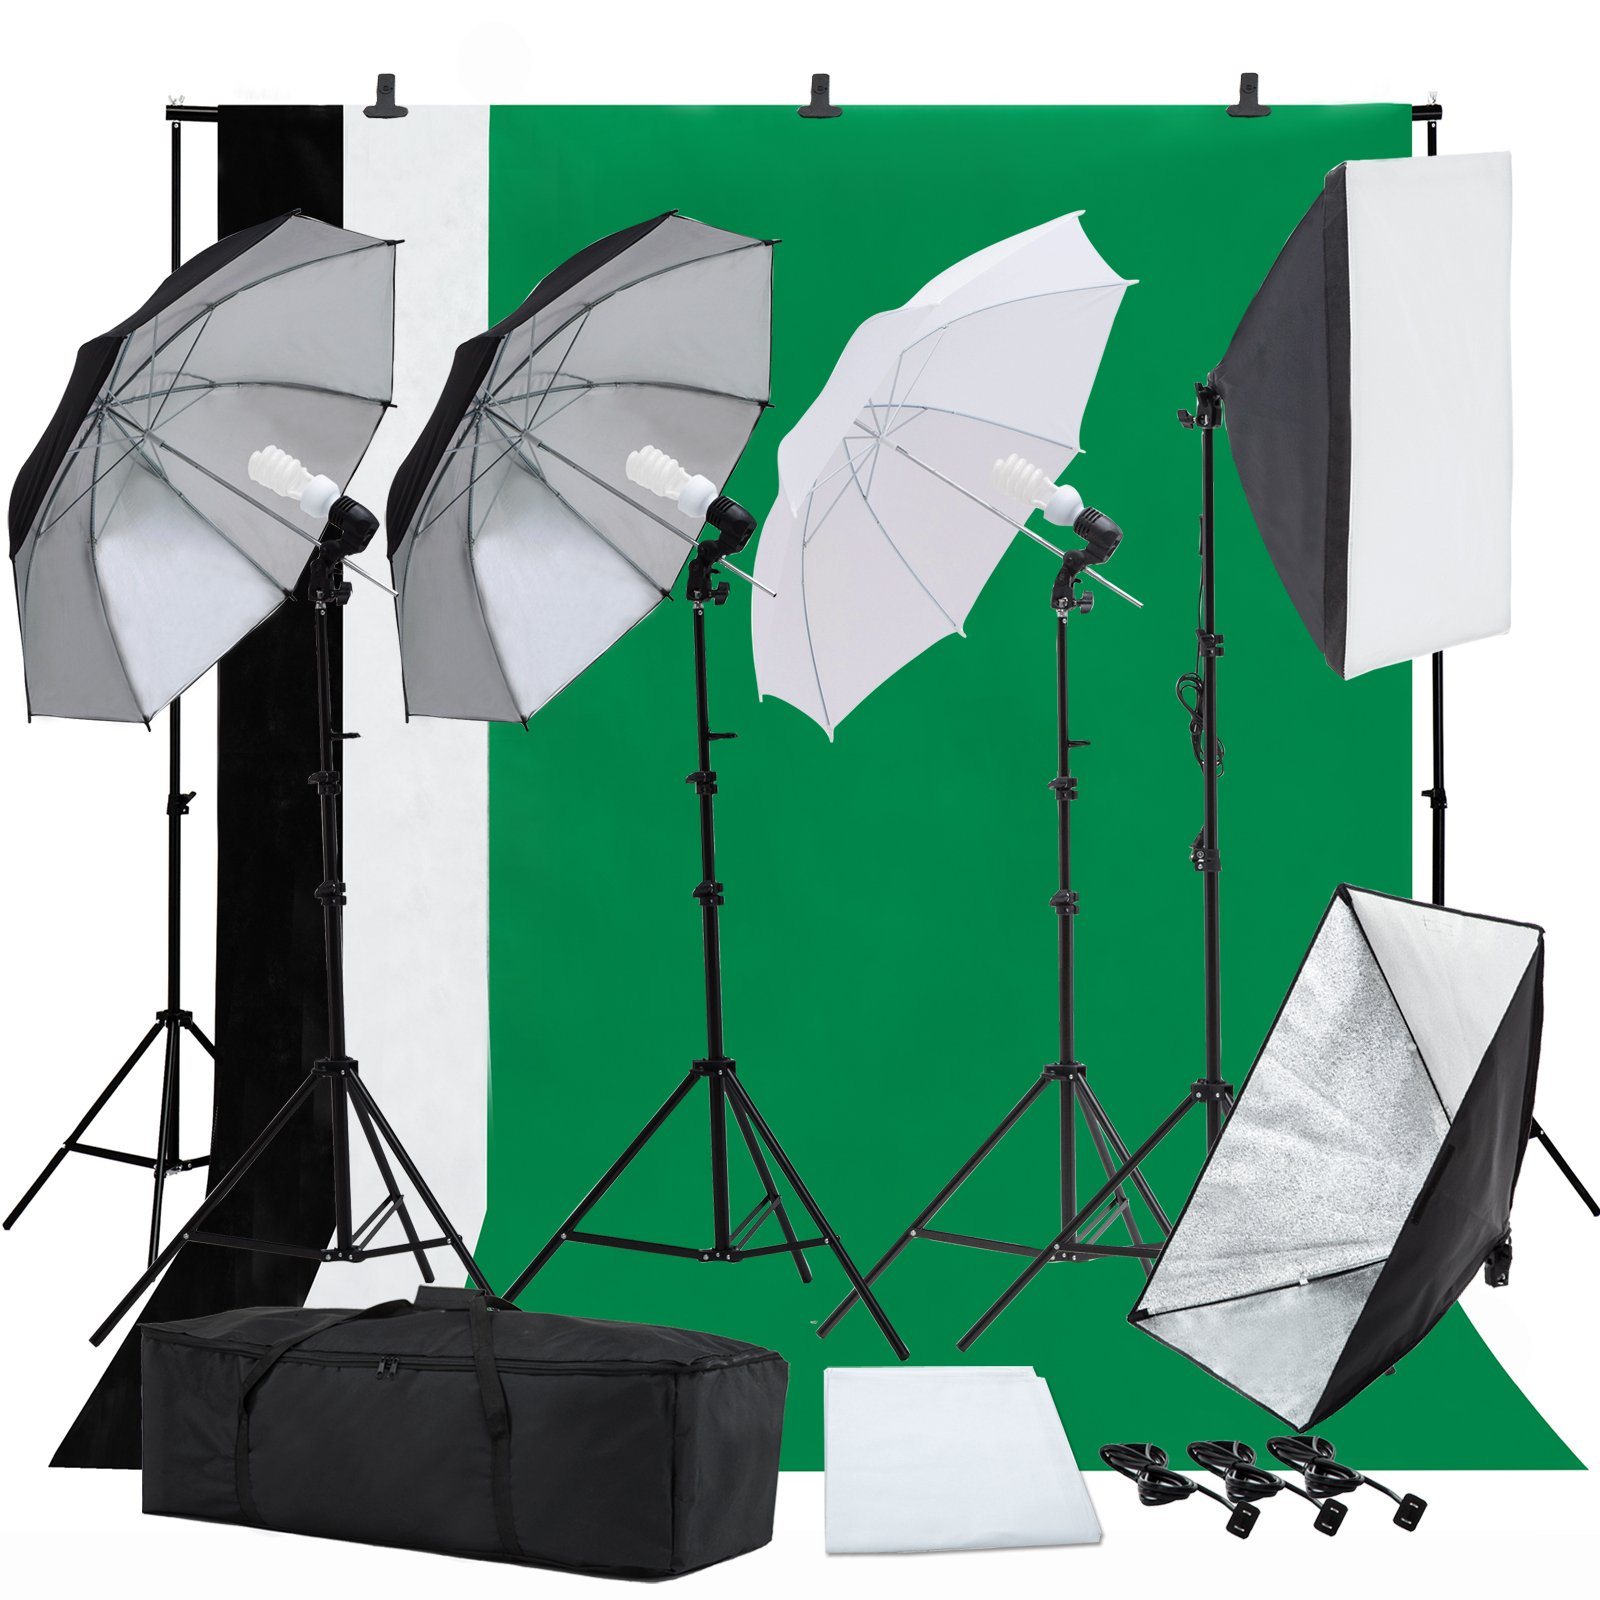 SUNCOO Photo Studio Photography Lighting Kit, Background Support Stand Kit 6.6ft x 10ft, Umbrellas Softbox Muslin Continuous Lighting Kit Case Portfolio Video Shooting, 4 Bulbs